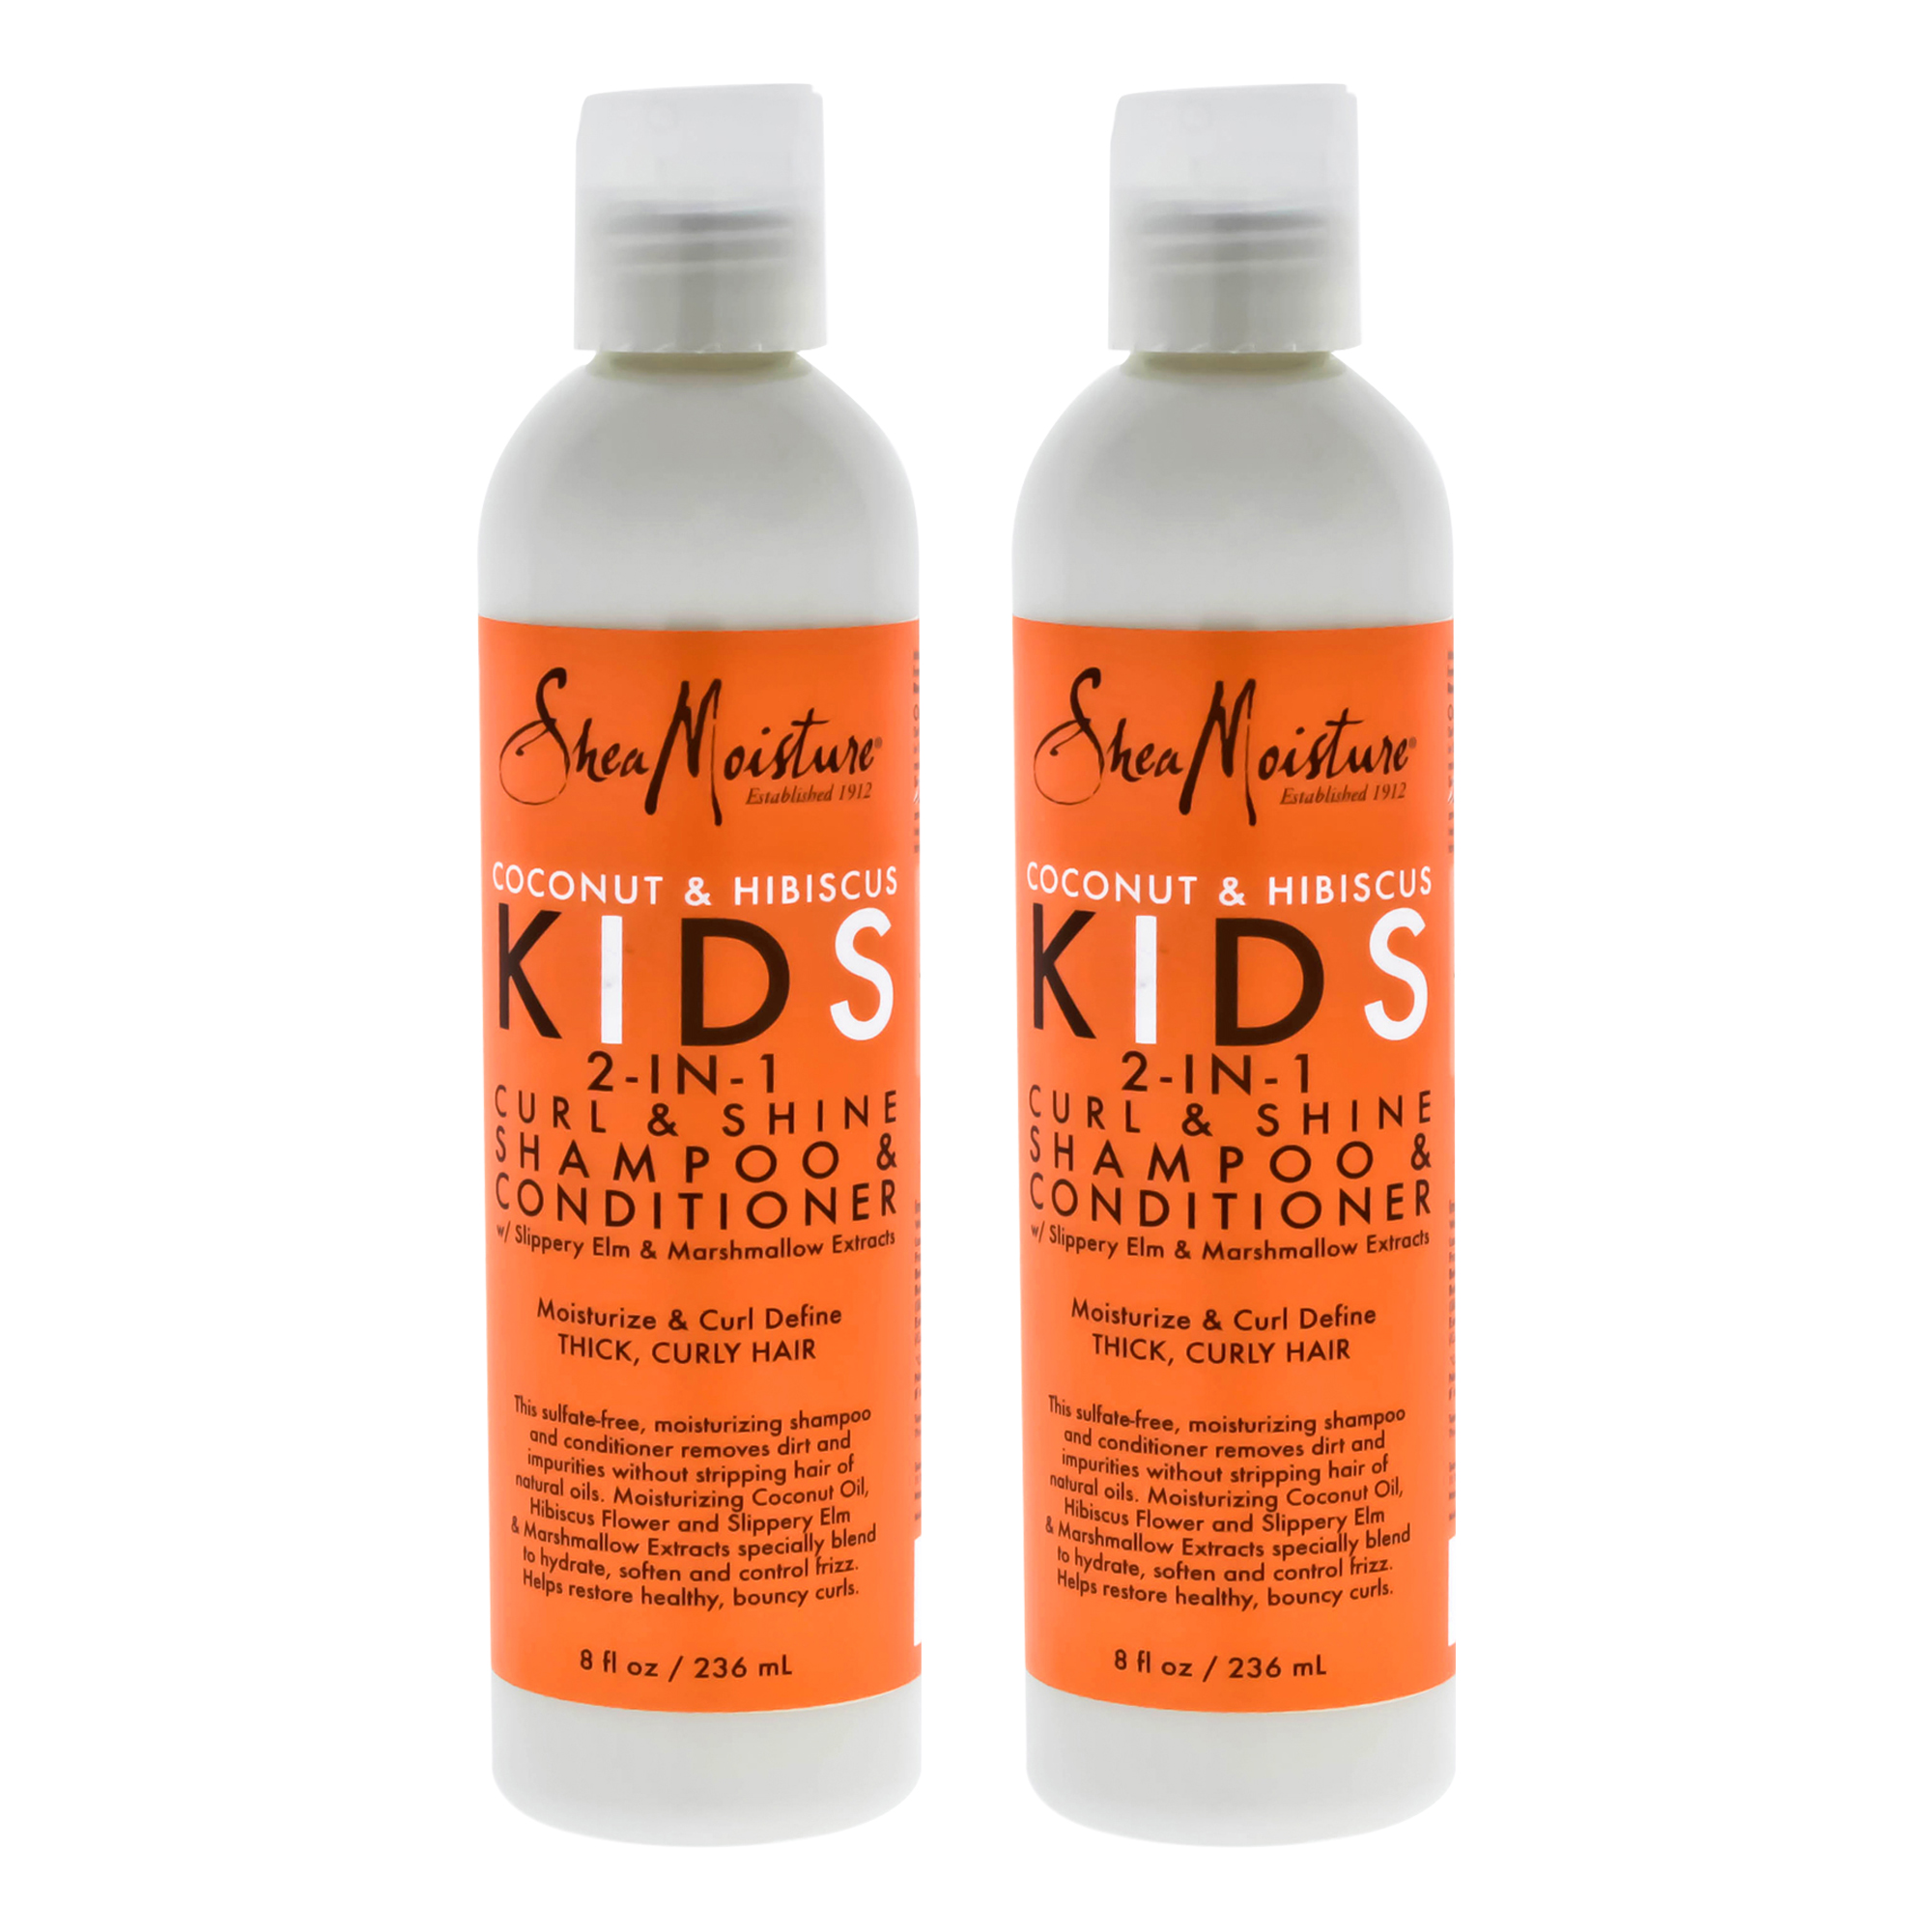 Coconut and Hibiscus Kids 2-In-1 Curl and Shine Shampoo and Conditioner by Shea Moisture for Unisex - - Pack of 2